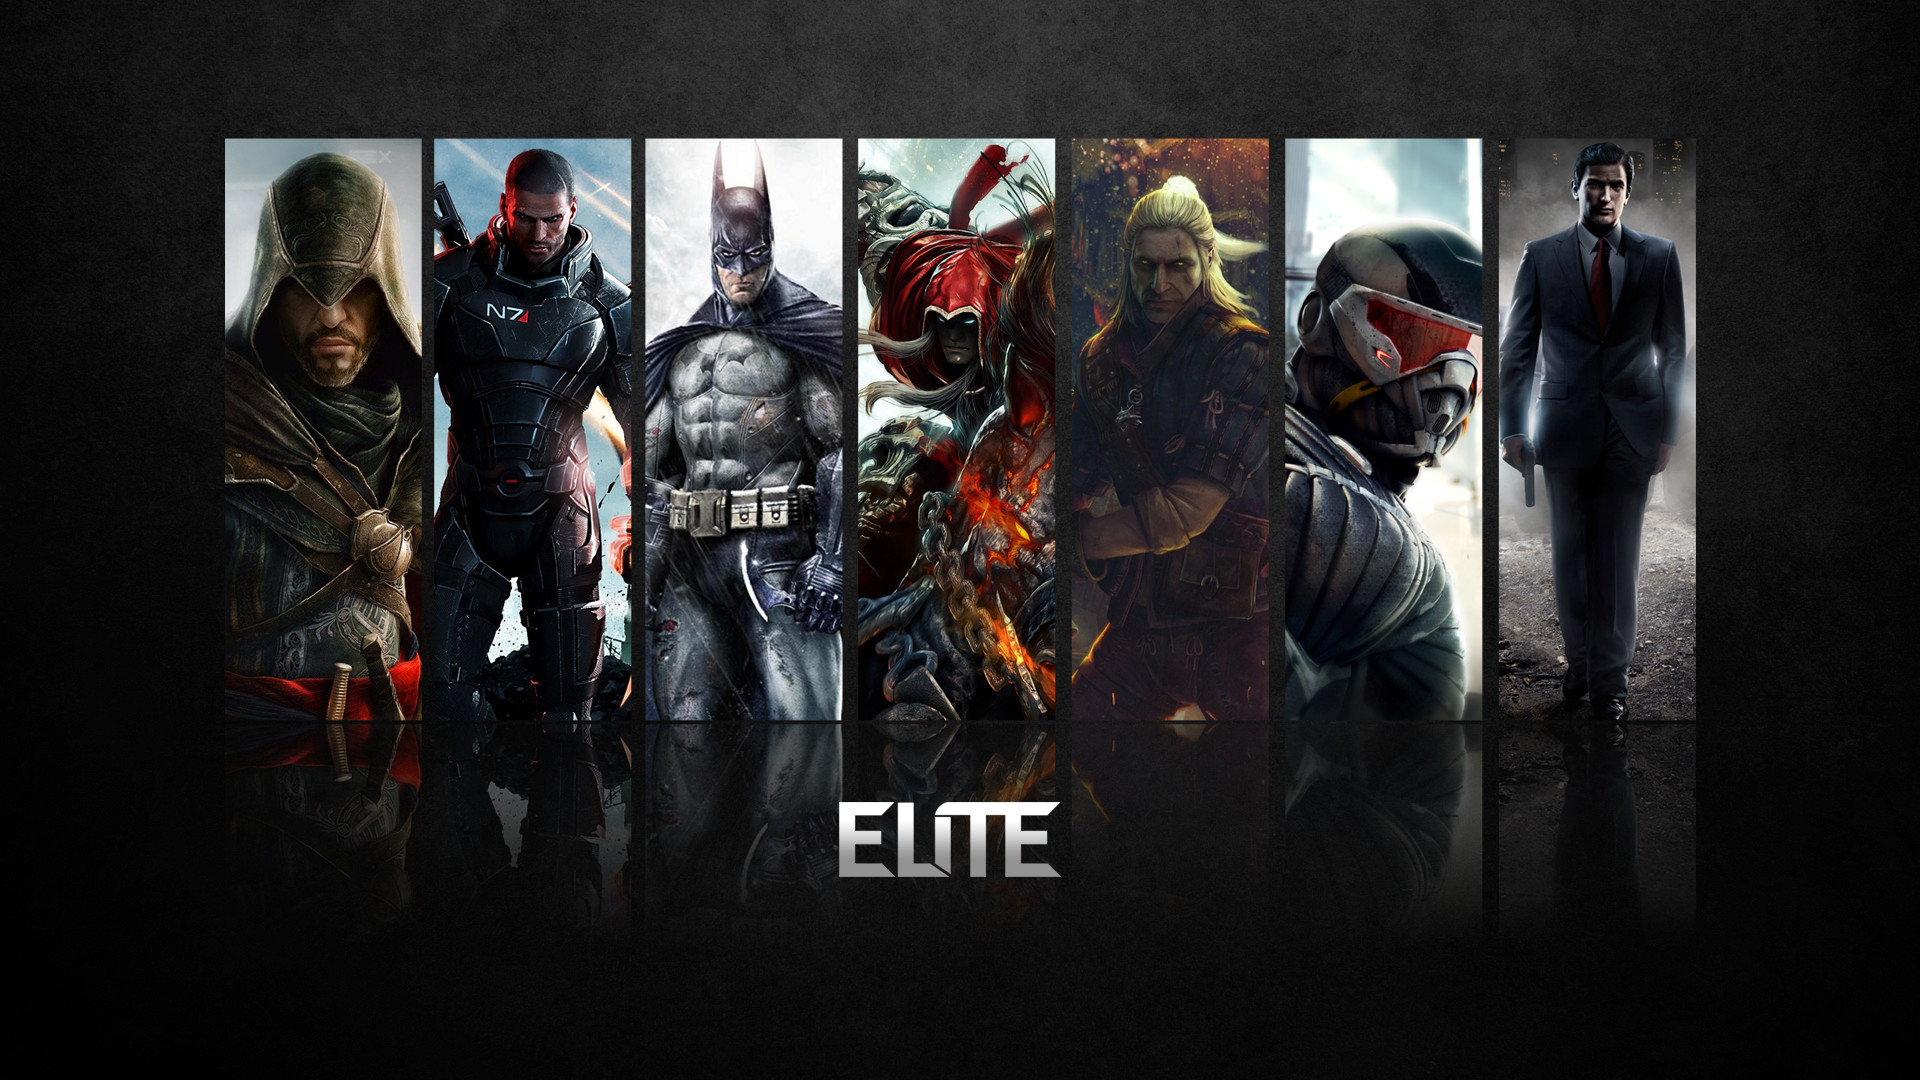 Video Game Wallpaper Photos Background